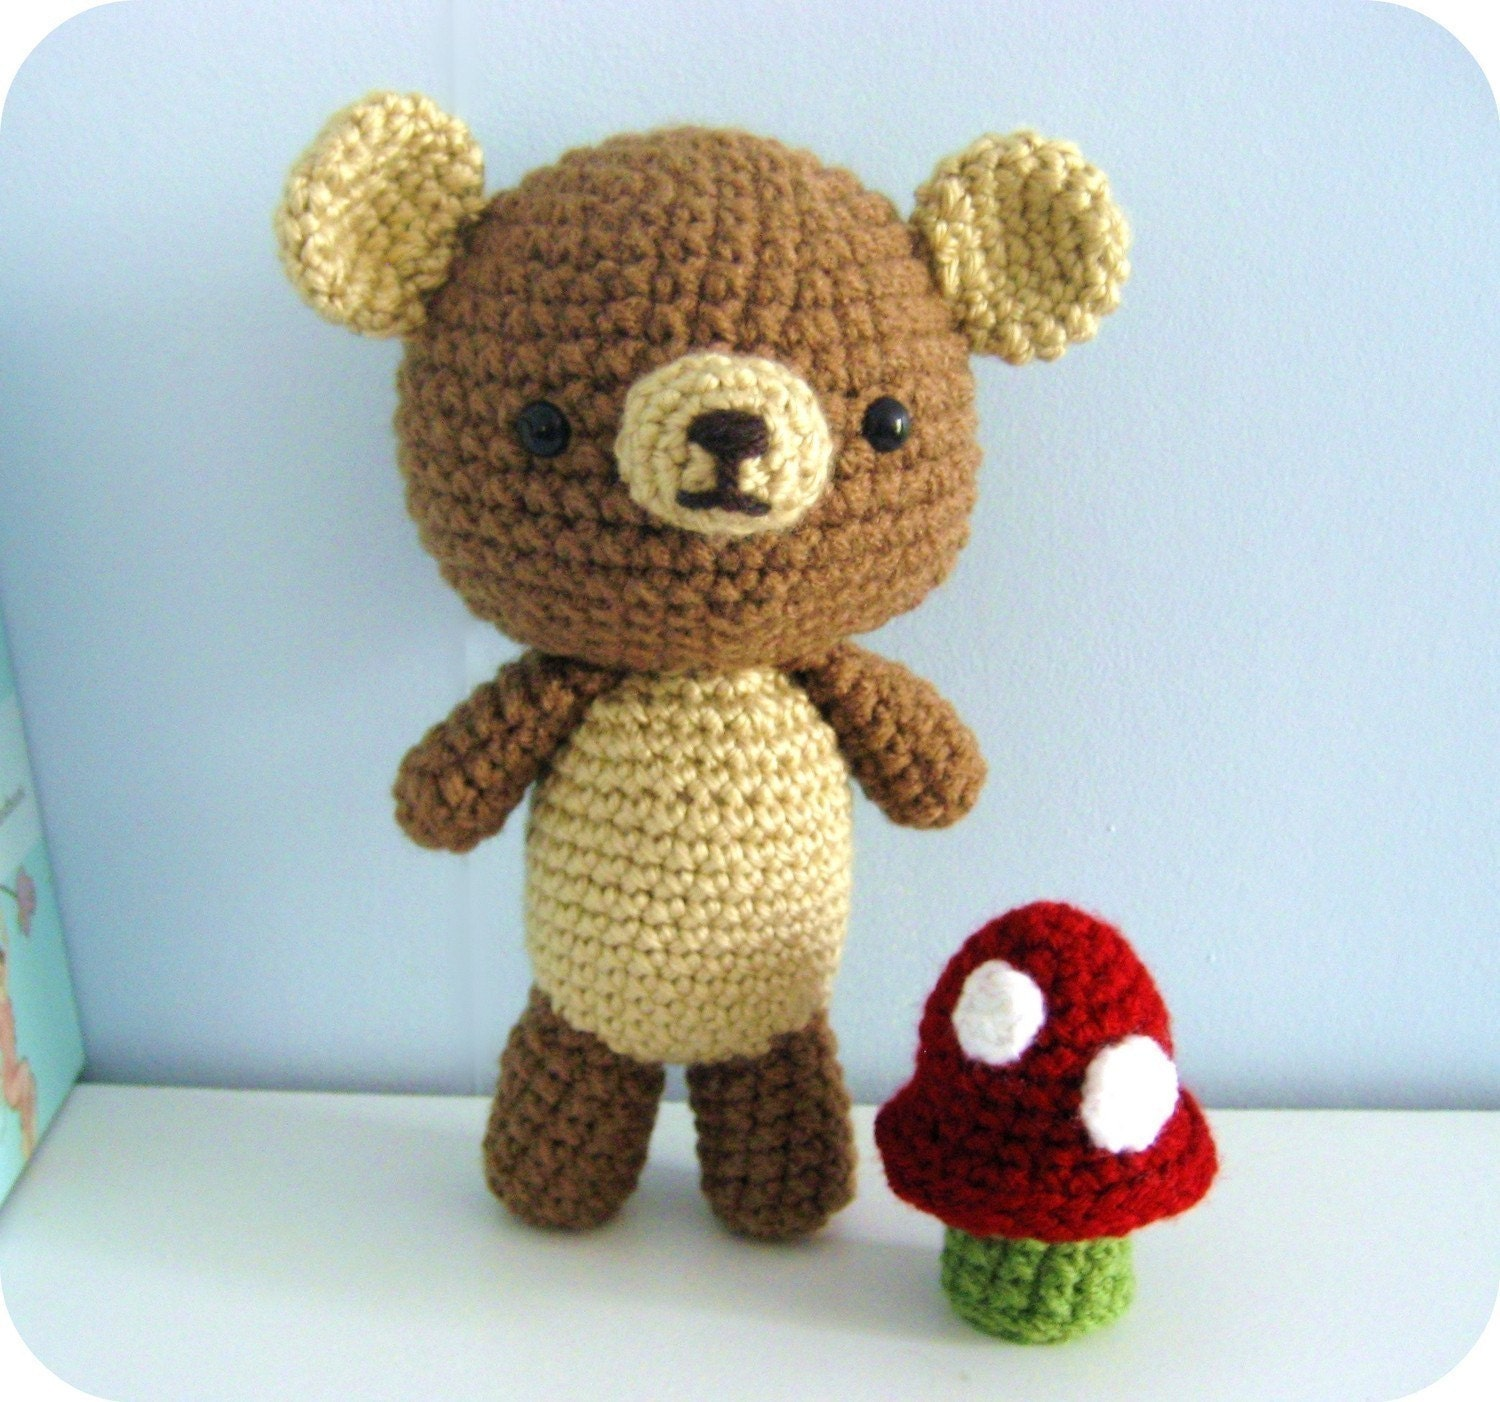 Amigurumi Crochet Bear and Mushroom Pattern Set Digital